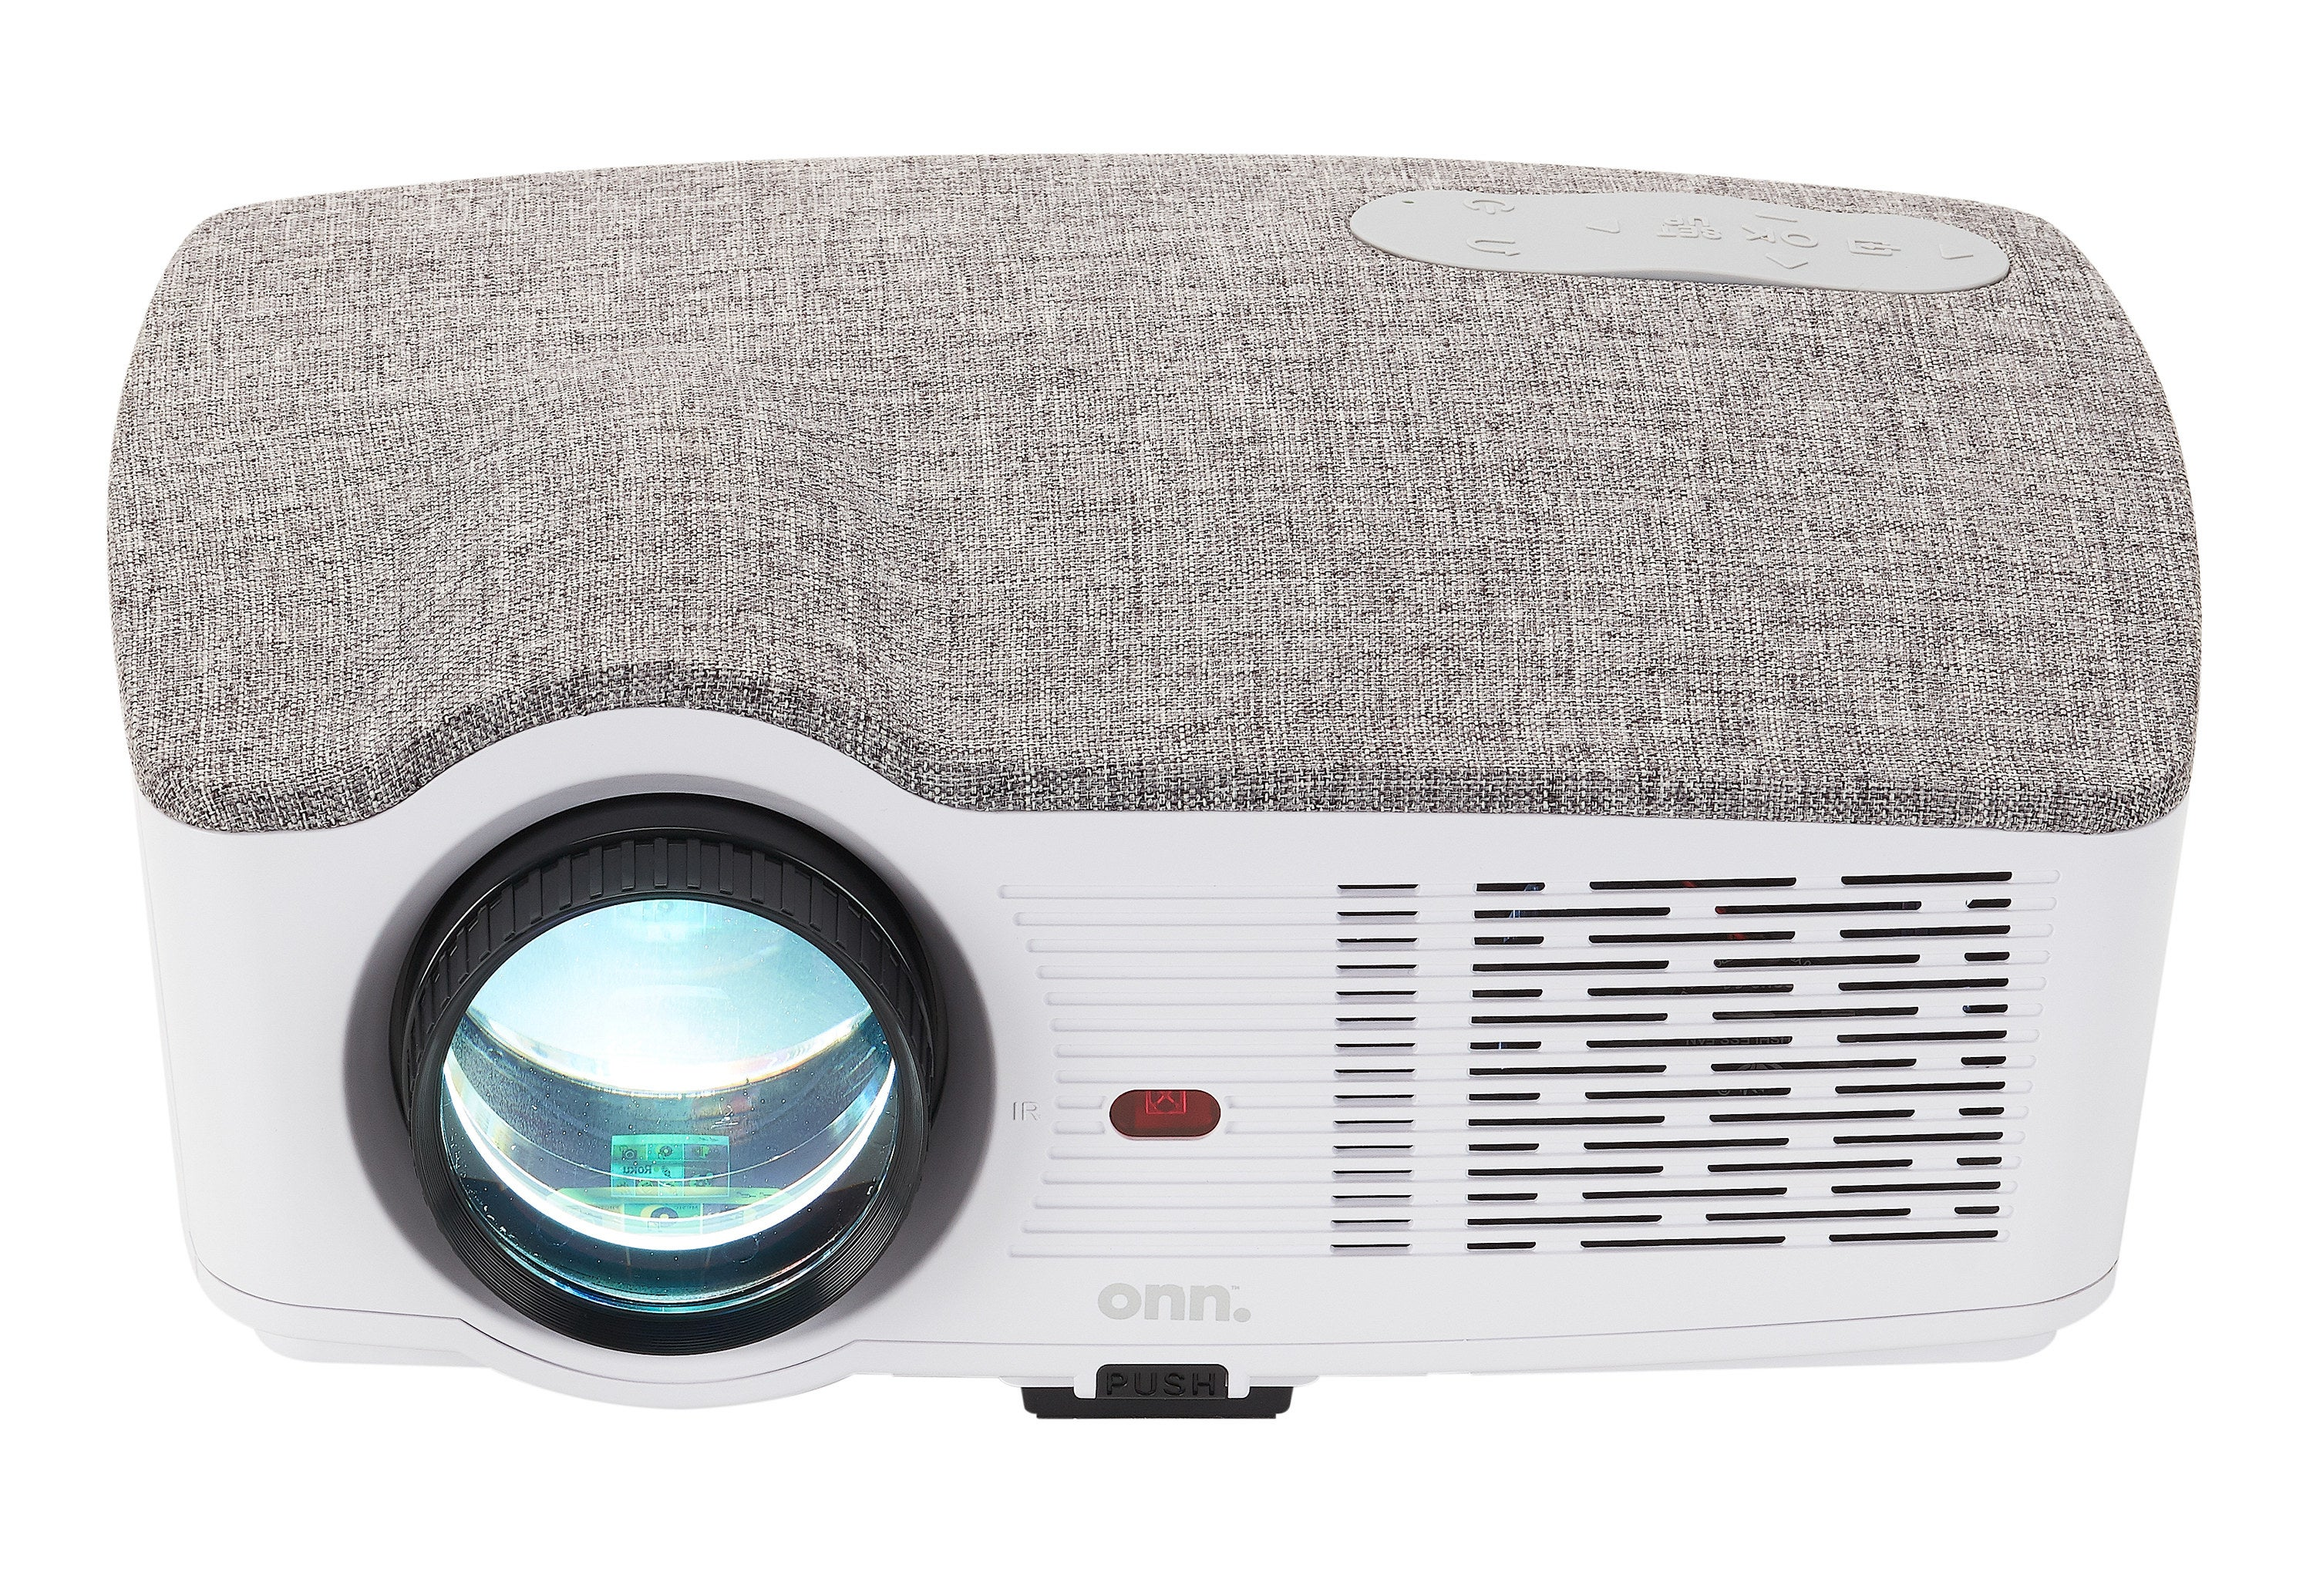 white and gray projector with light turned on